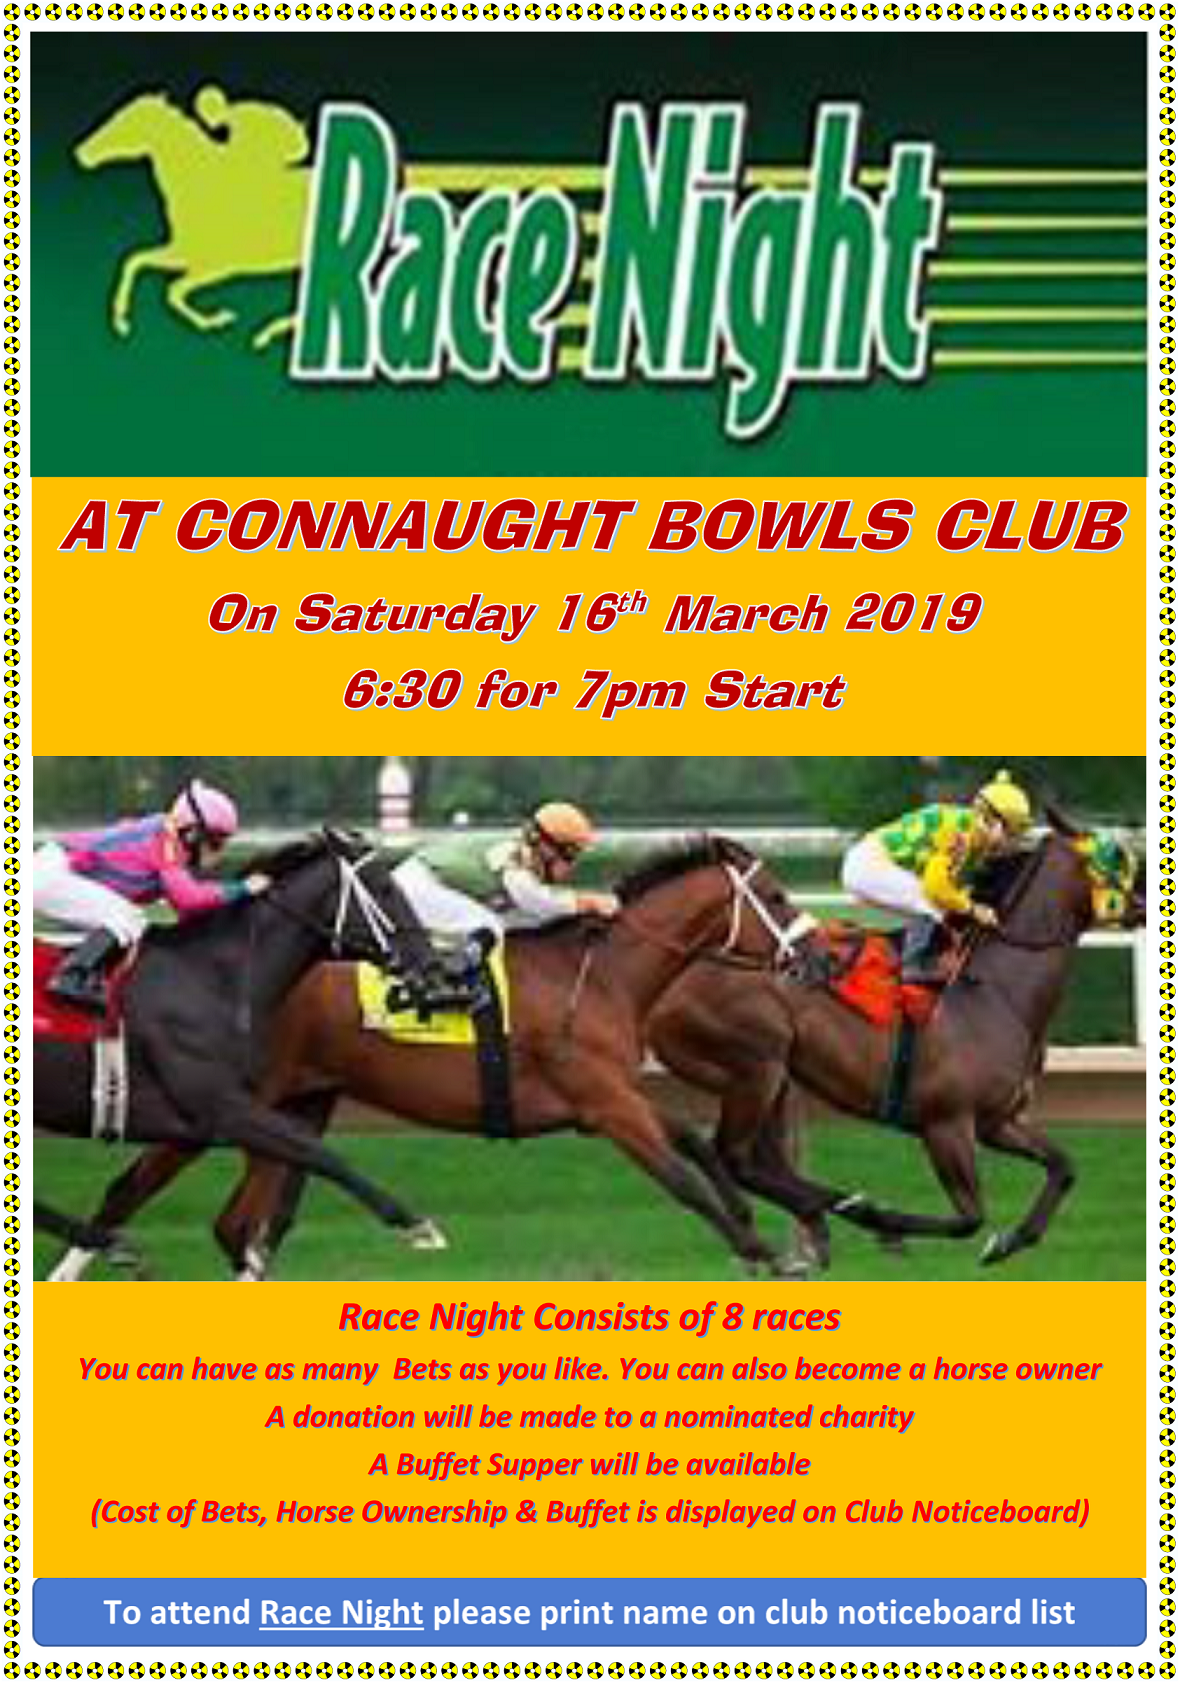 website-race-night-poster-2019.png